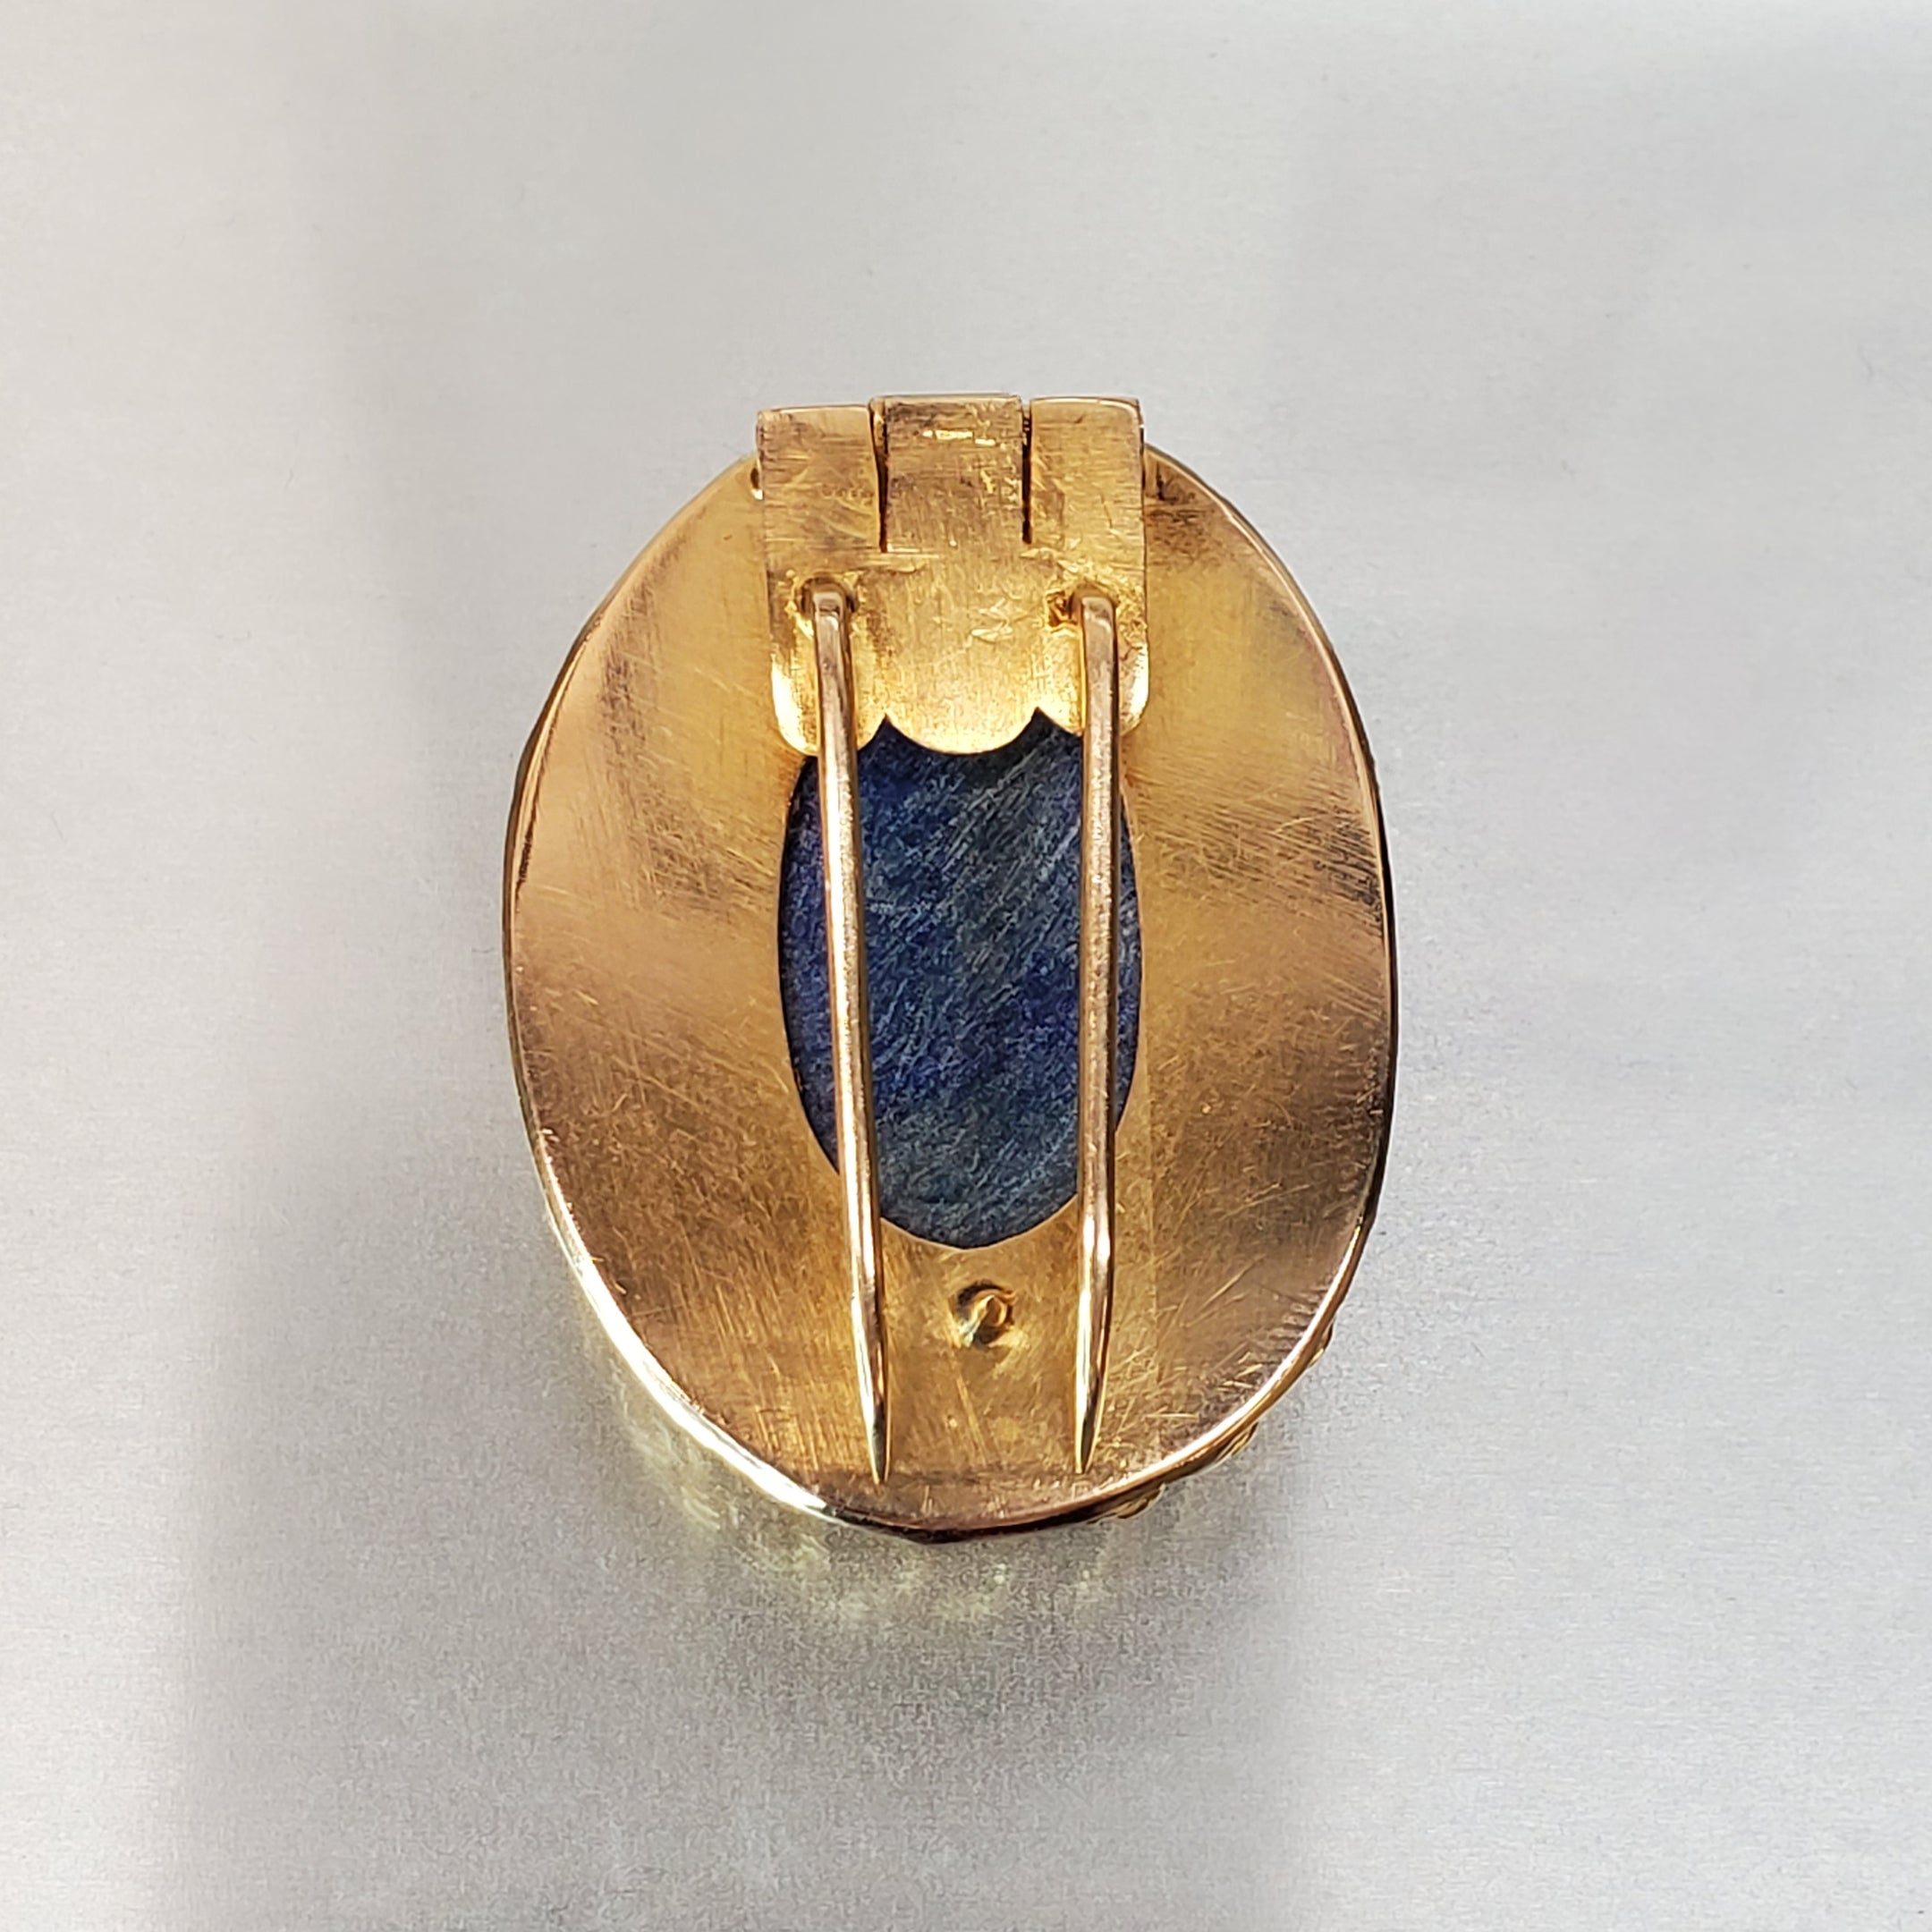 14 karat yellow gold, oval lapis cabochon, wire work frame, braided design, estate brooch